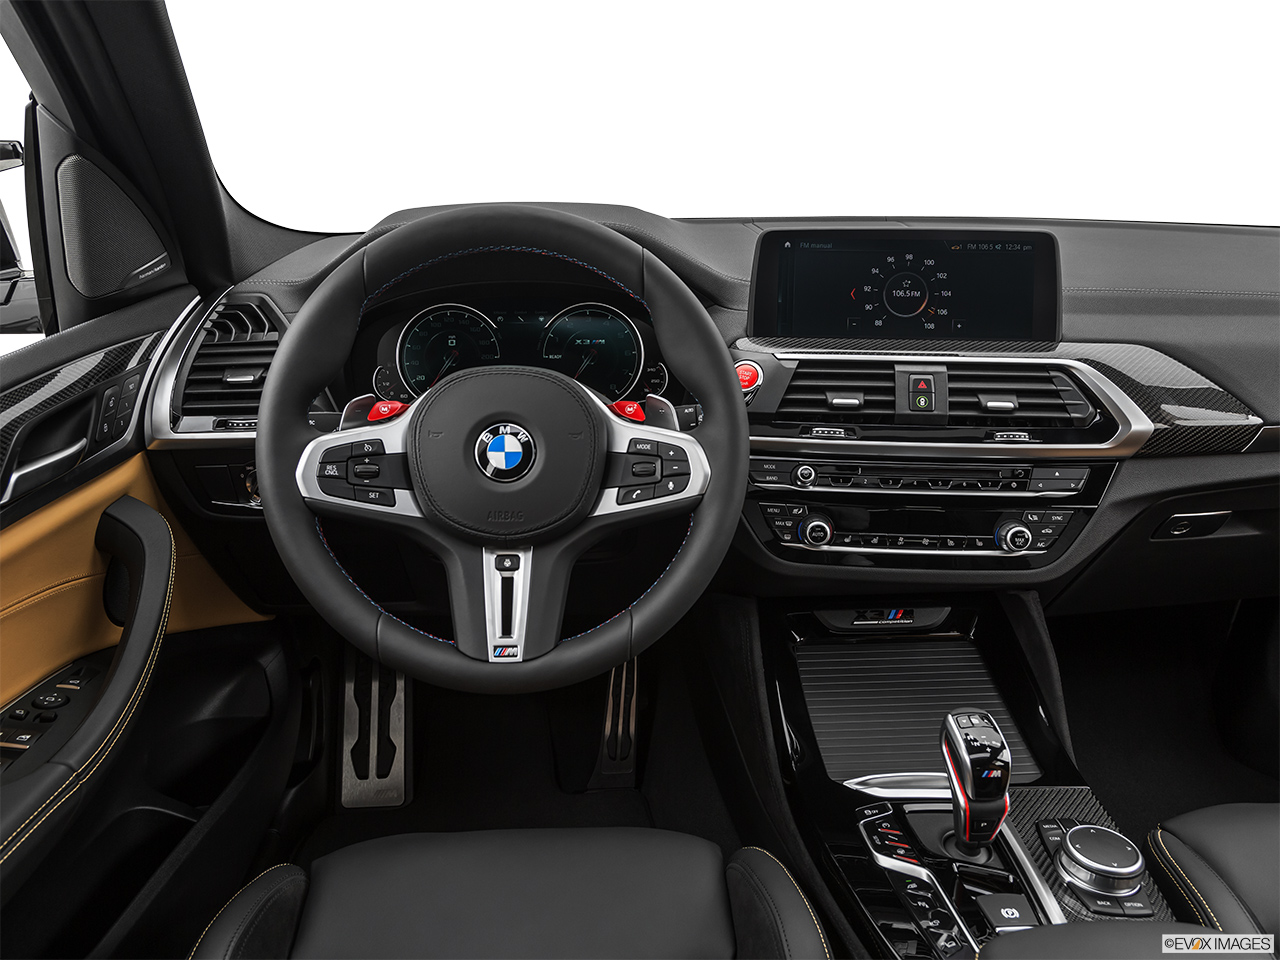 2020 BMW X3 M Competition Steering wheel/Center Console.